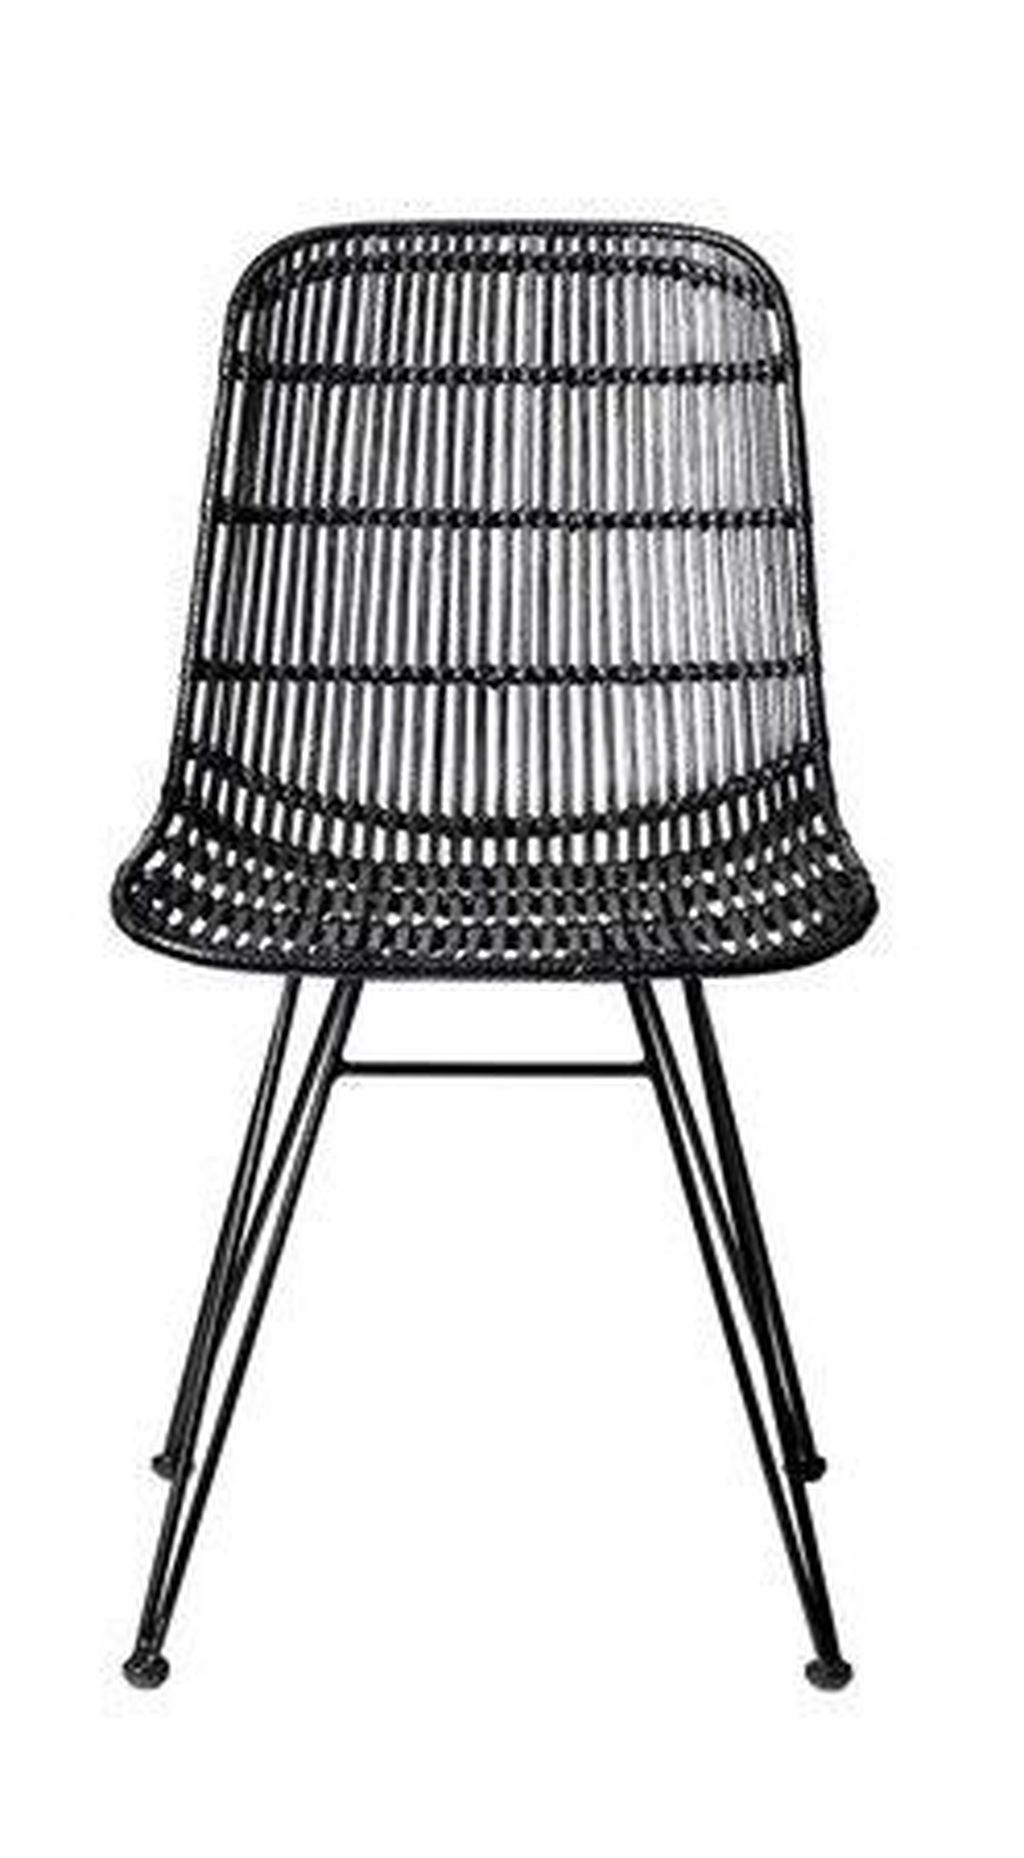 Cute Black Rattan Chairs Designs Ideas To Try This Year 28